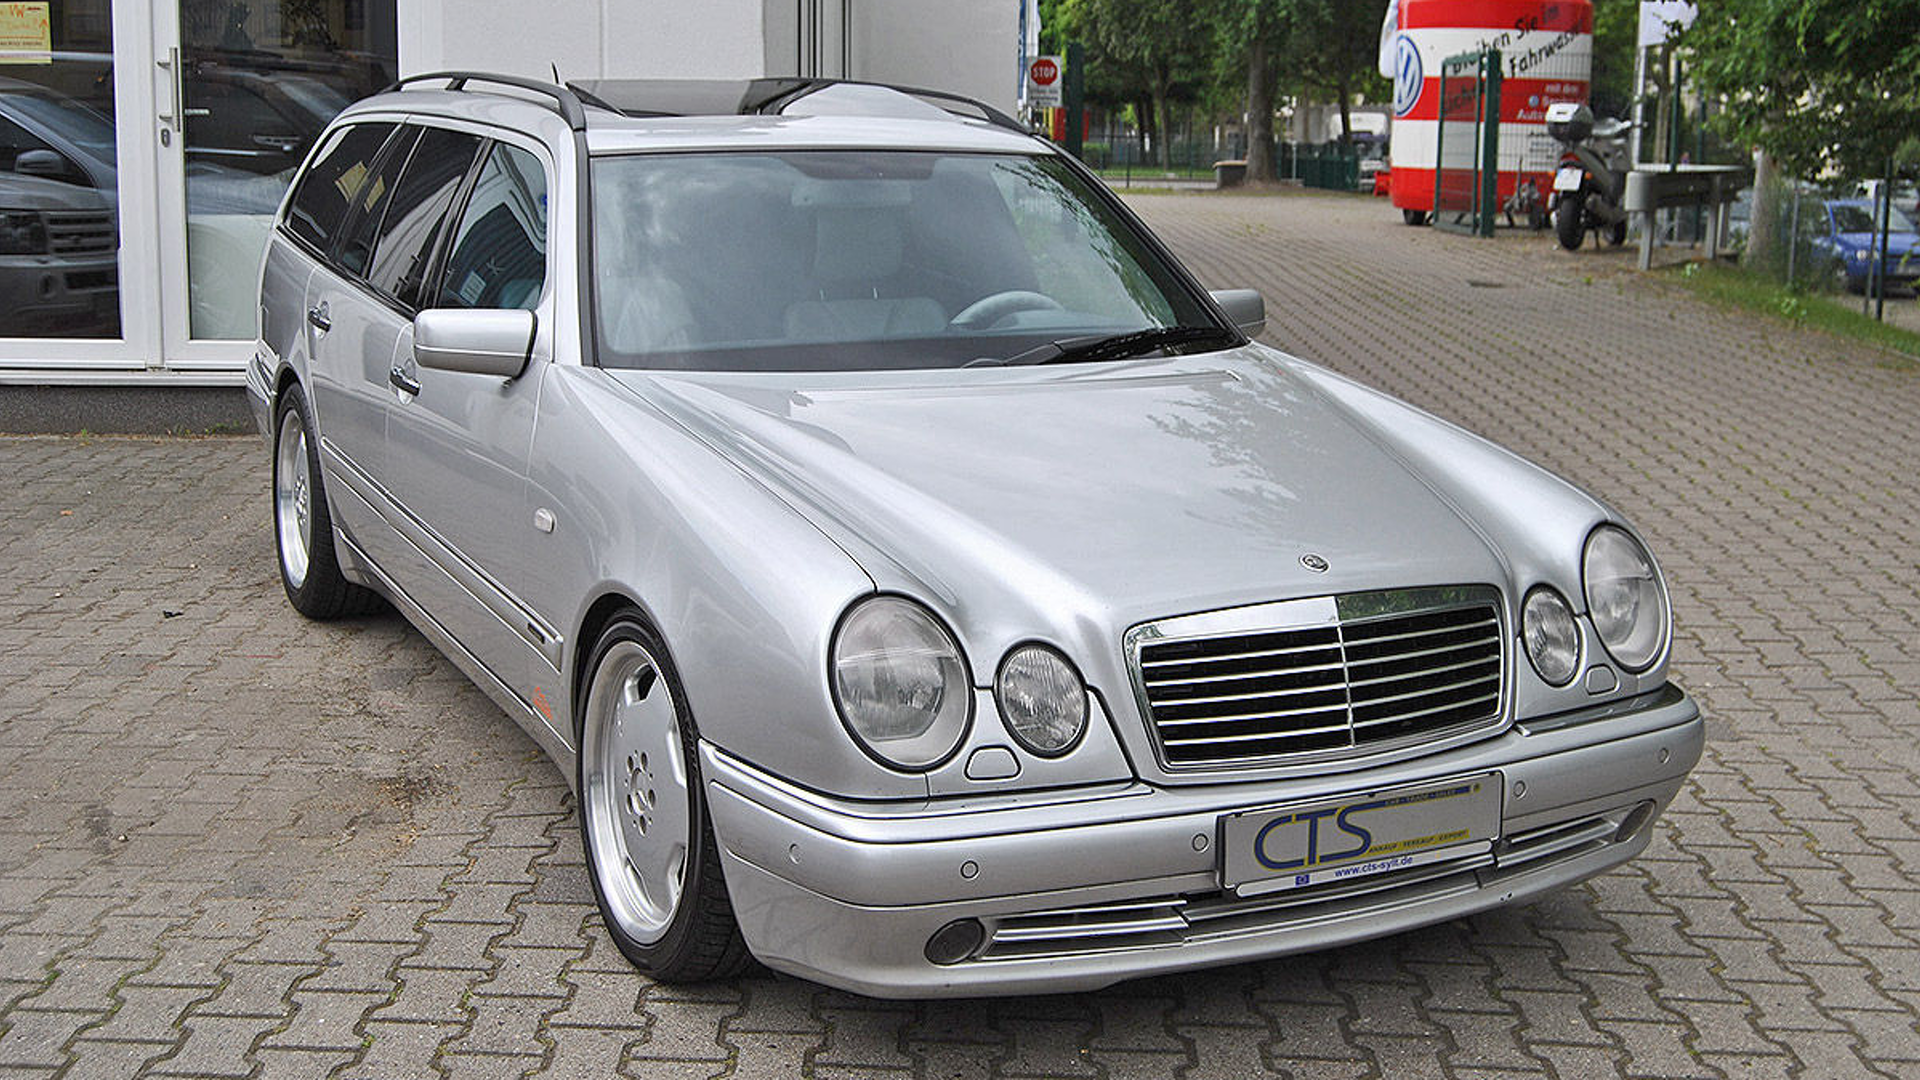 Mercedes e55 amg owned by michael schumacher for sale for Mercedes benz e55 amg wagon for sale